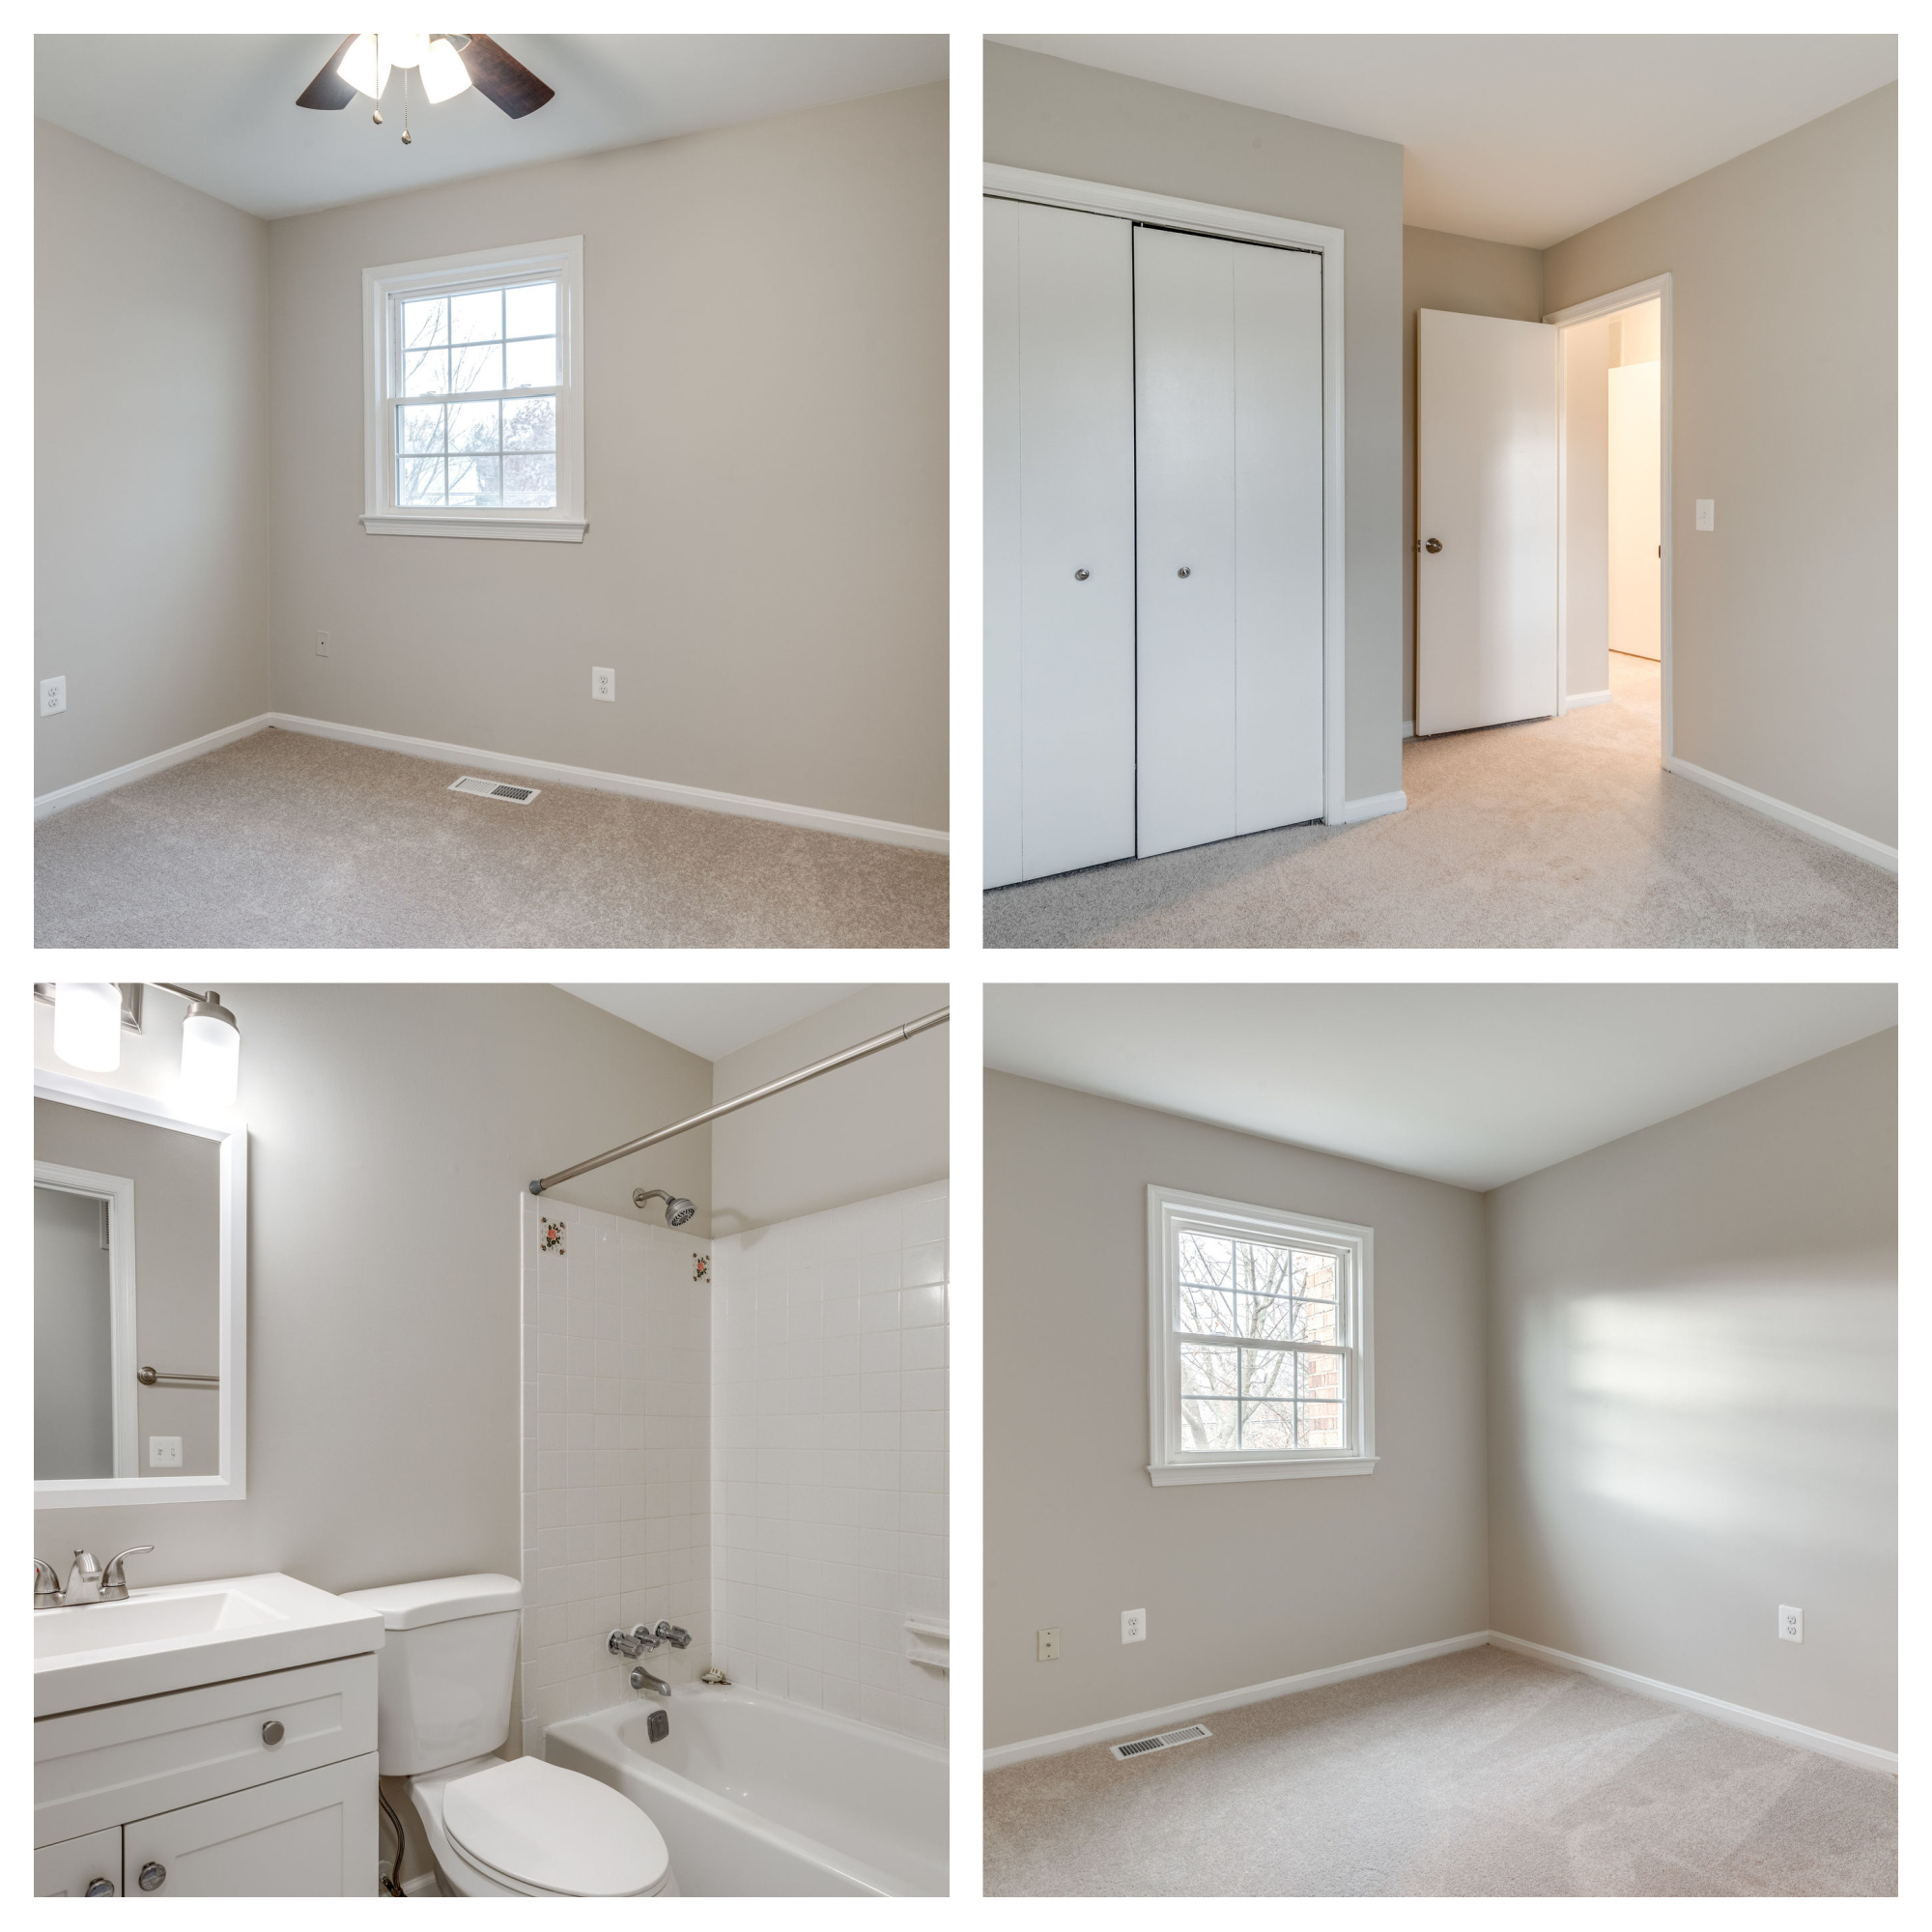 403 Maple Ct, Herndon- Additional Bedrooms and Bath